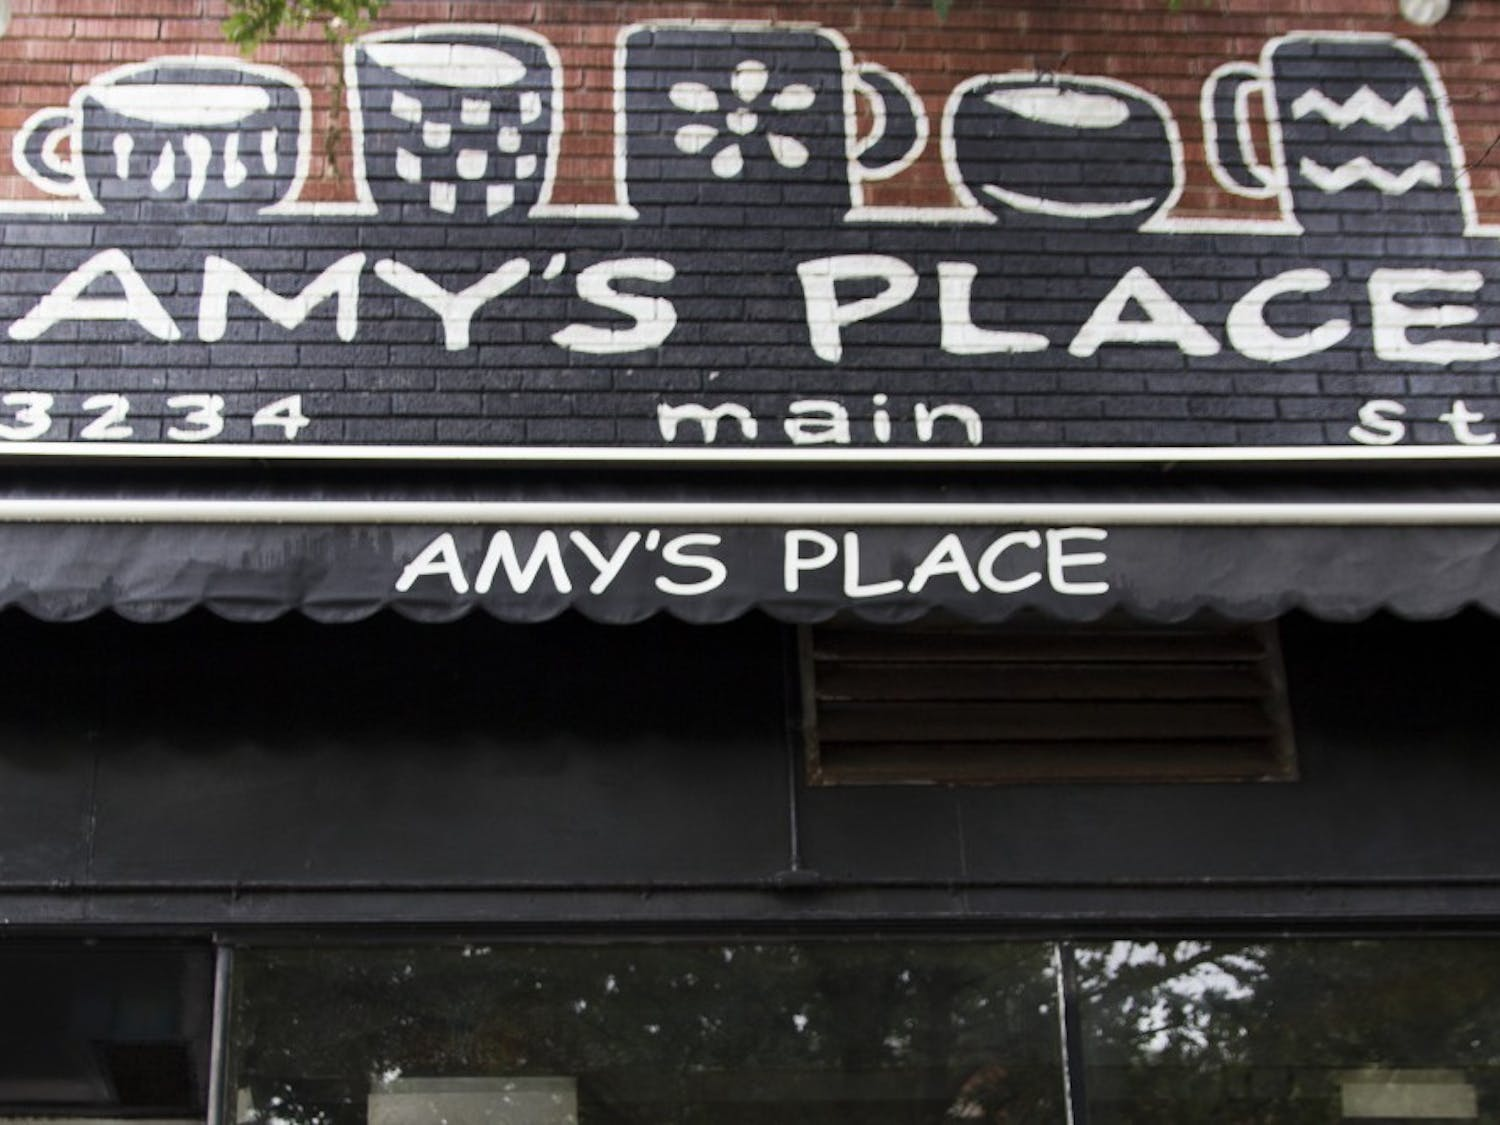 If you're looking for some falafel, there are tons of tasty options to choose form in the Queen City. Amy's Place (pictured above) offers a delicious falafel wrap for a modest price, and it's right down the road from South Campus.